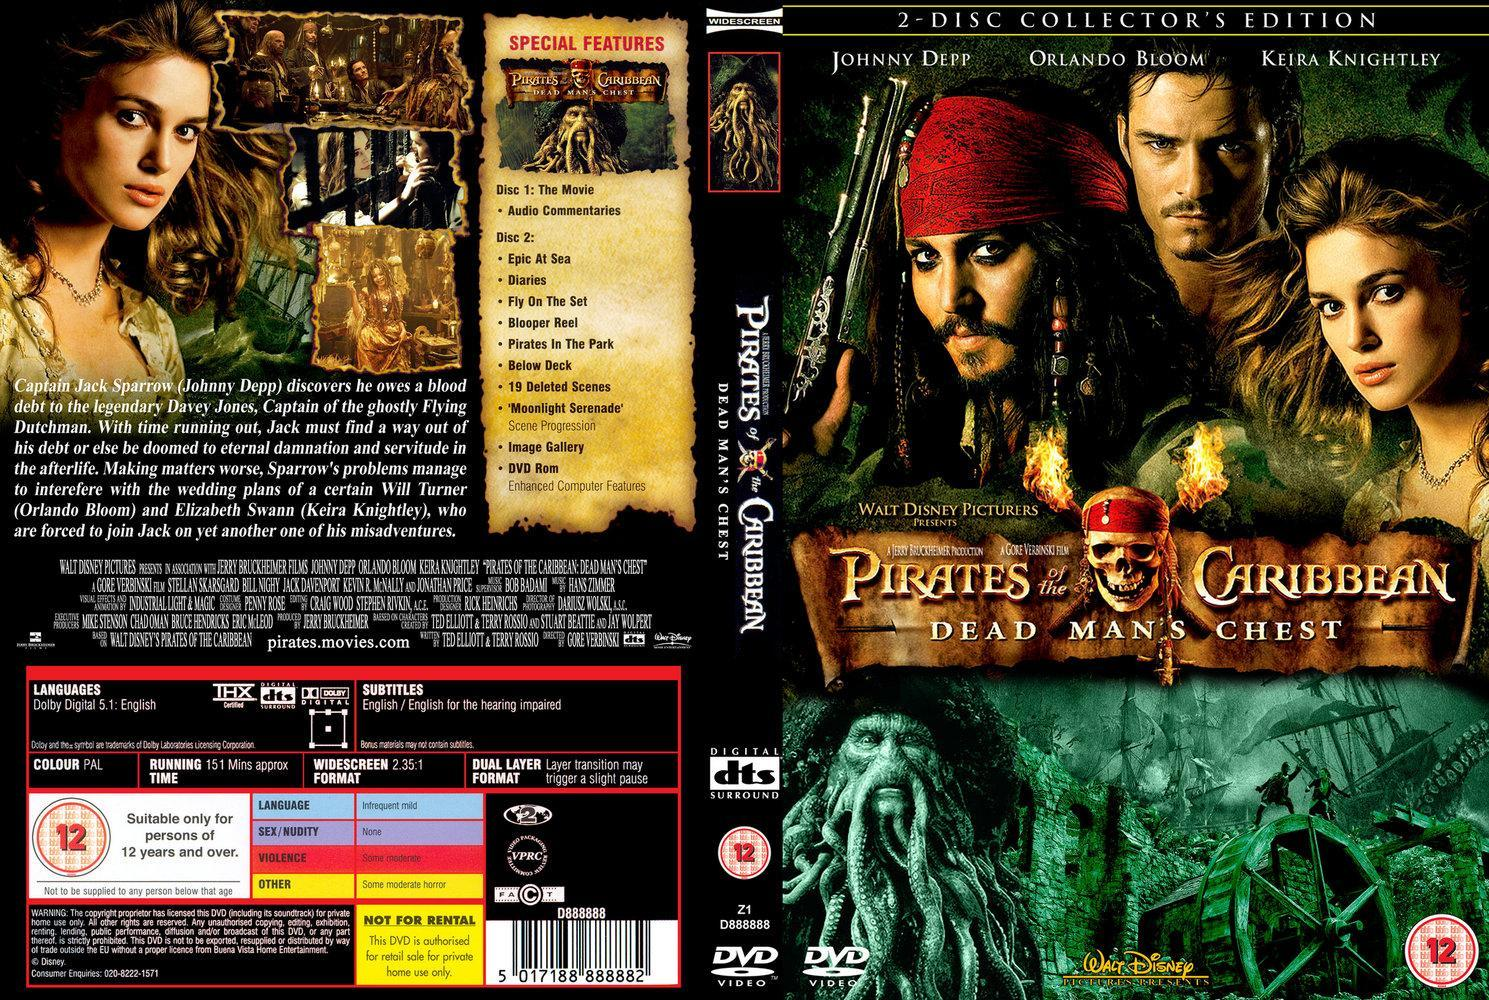 Image Gallery For Pirates Of The Caribbean Dead Man S Chest Filmaffinity